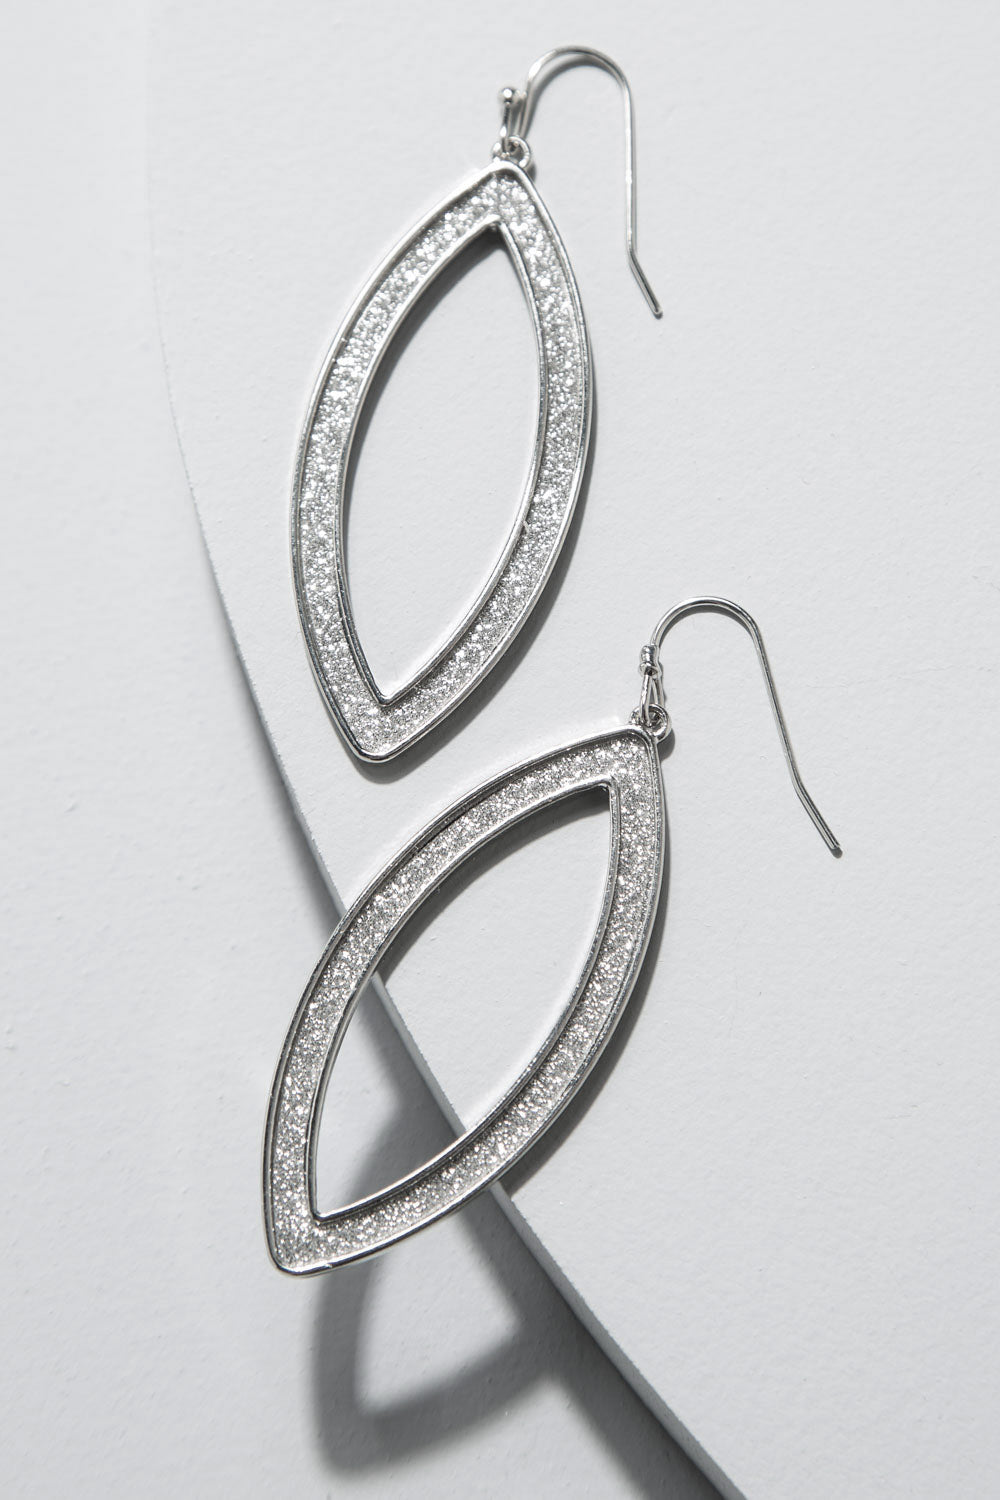 Type 2 Heaven Sent Earrings